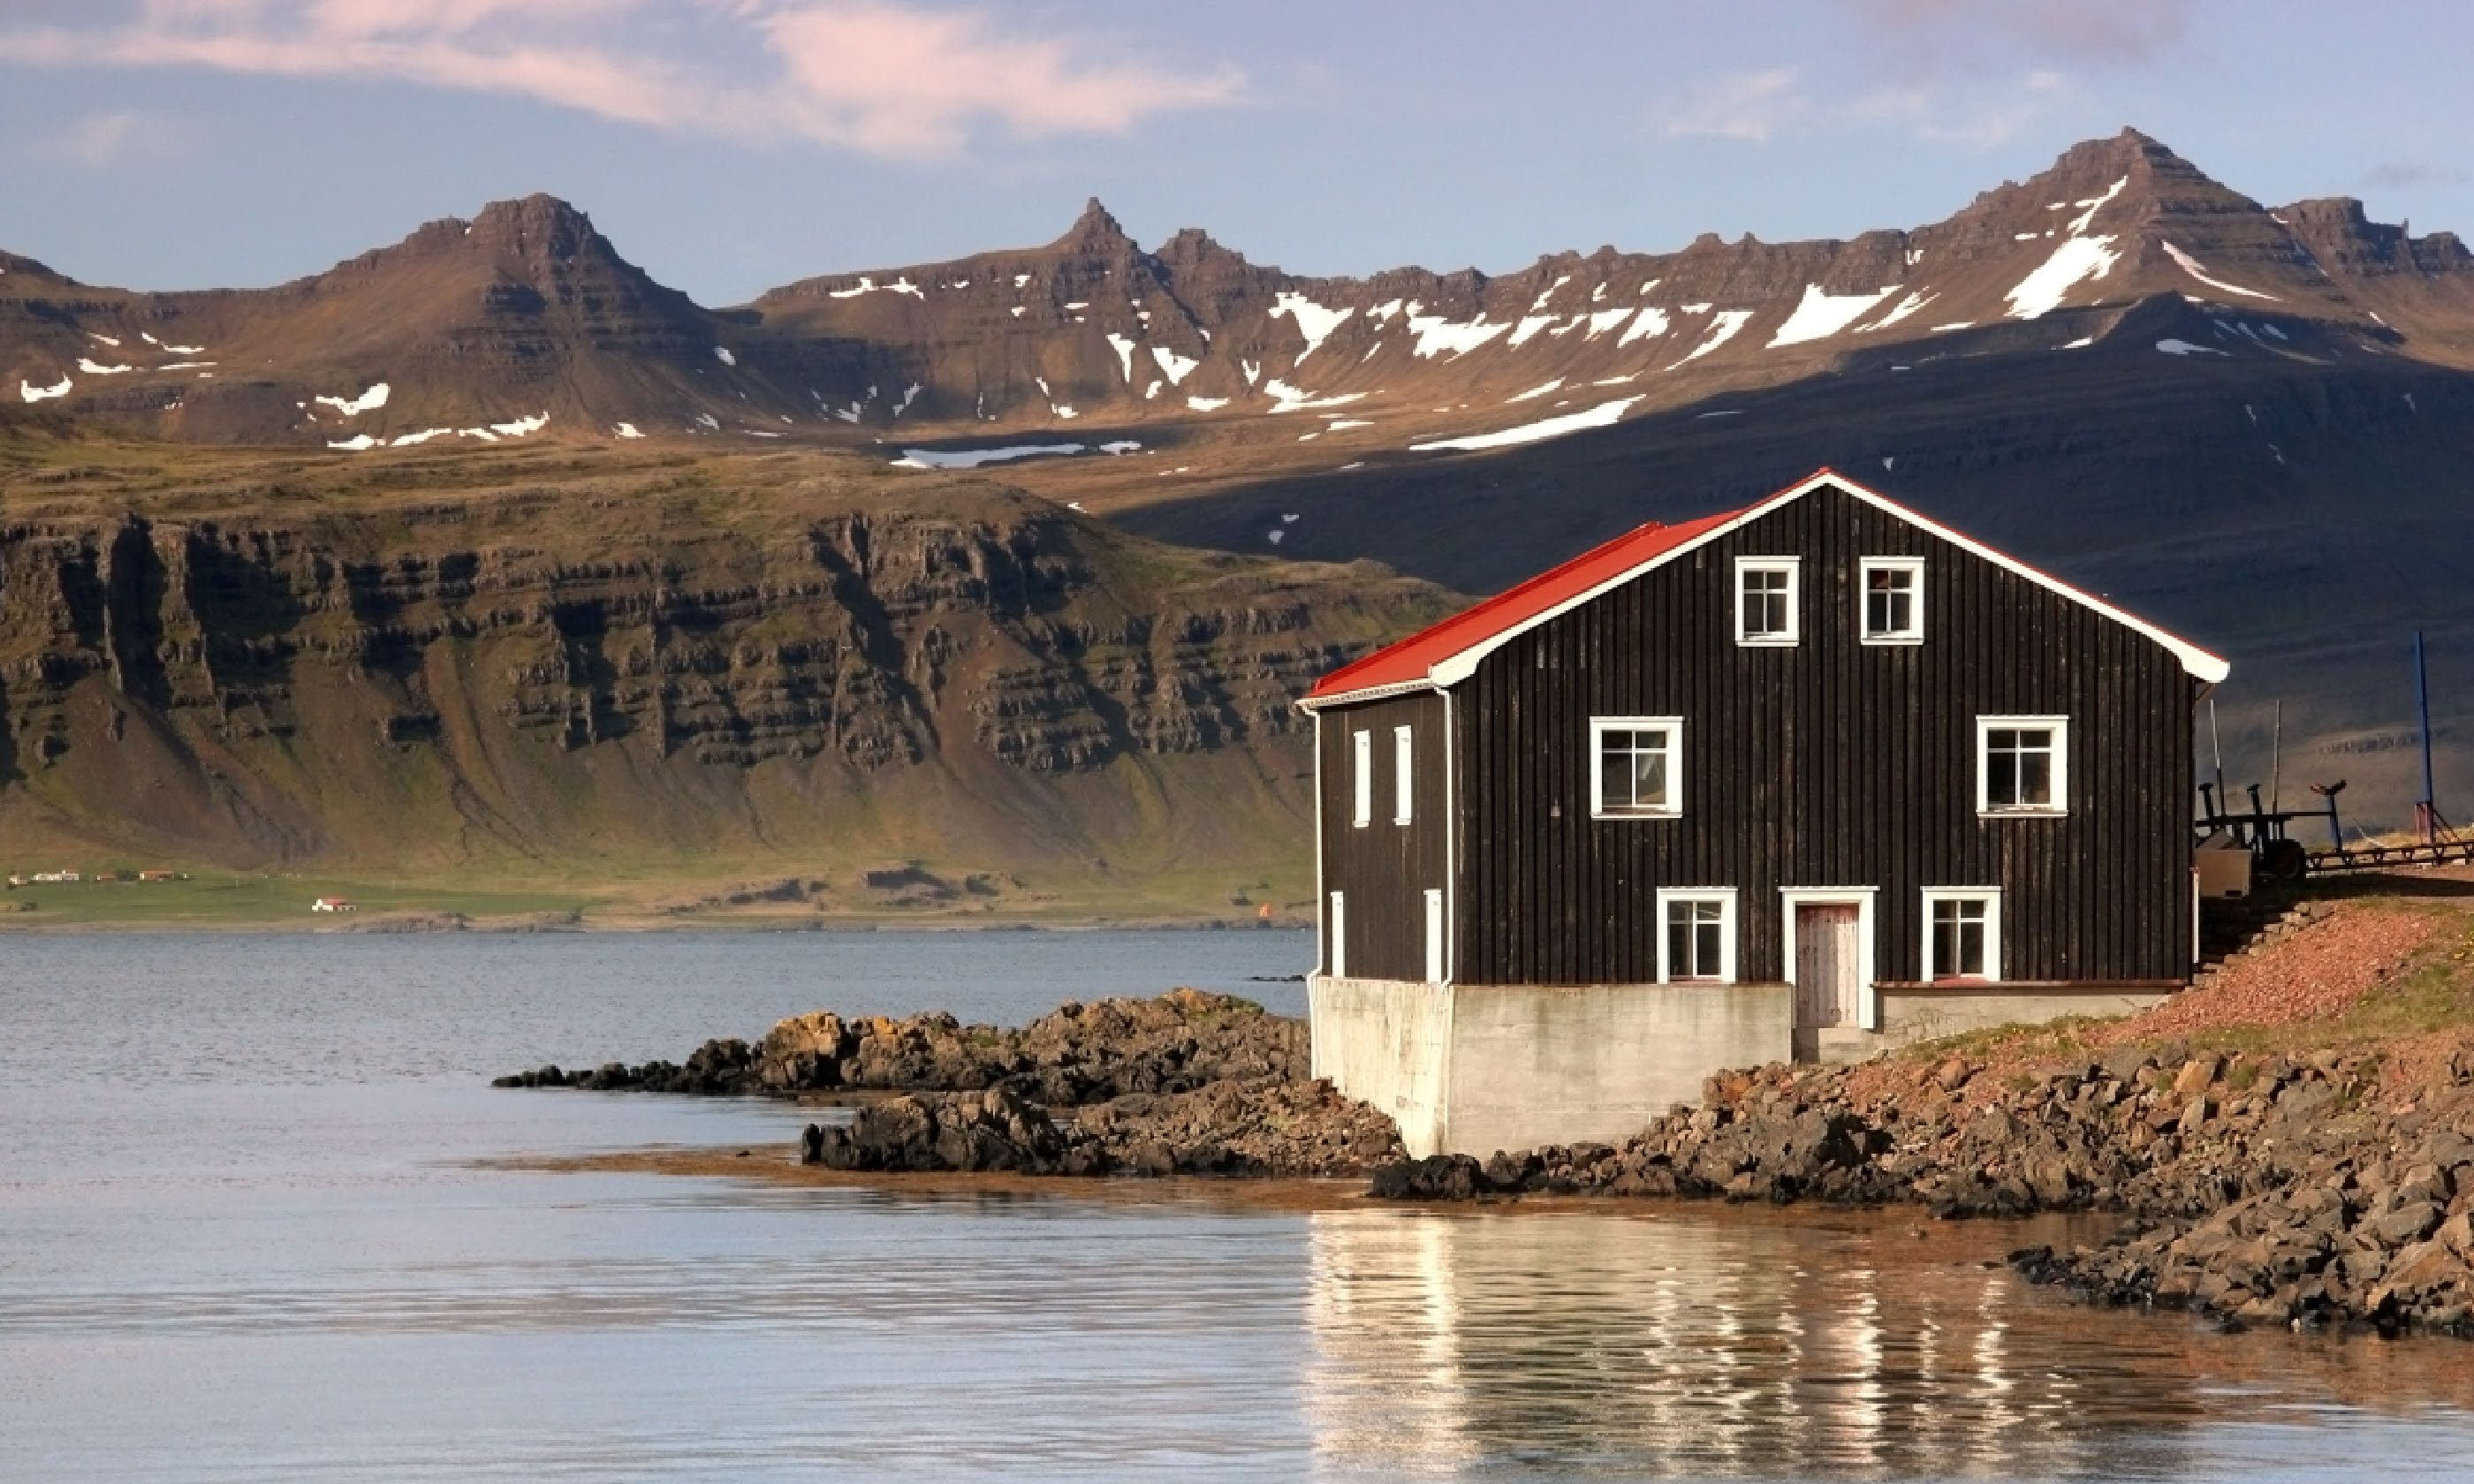 House in East Fjords, Iceland (Shutterstock)